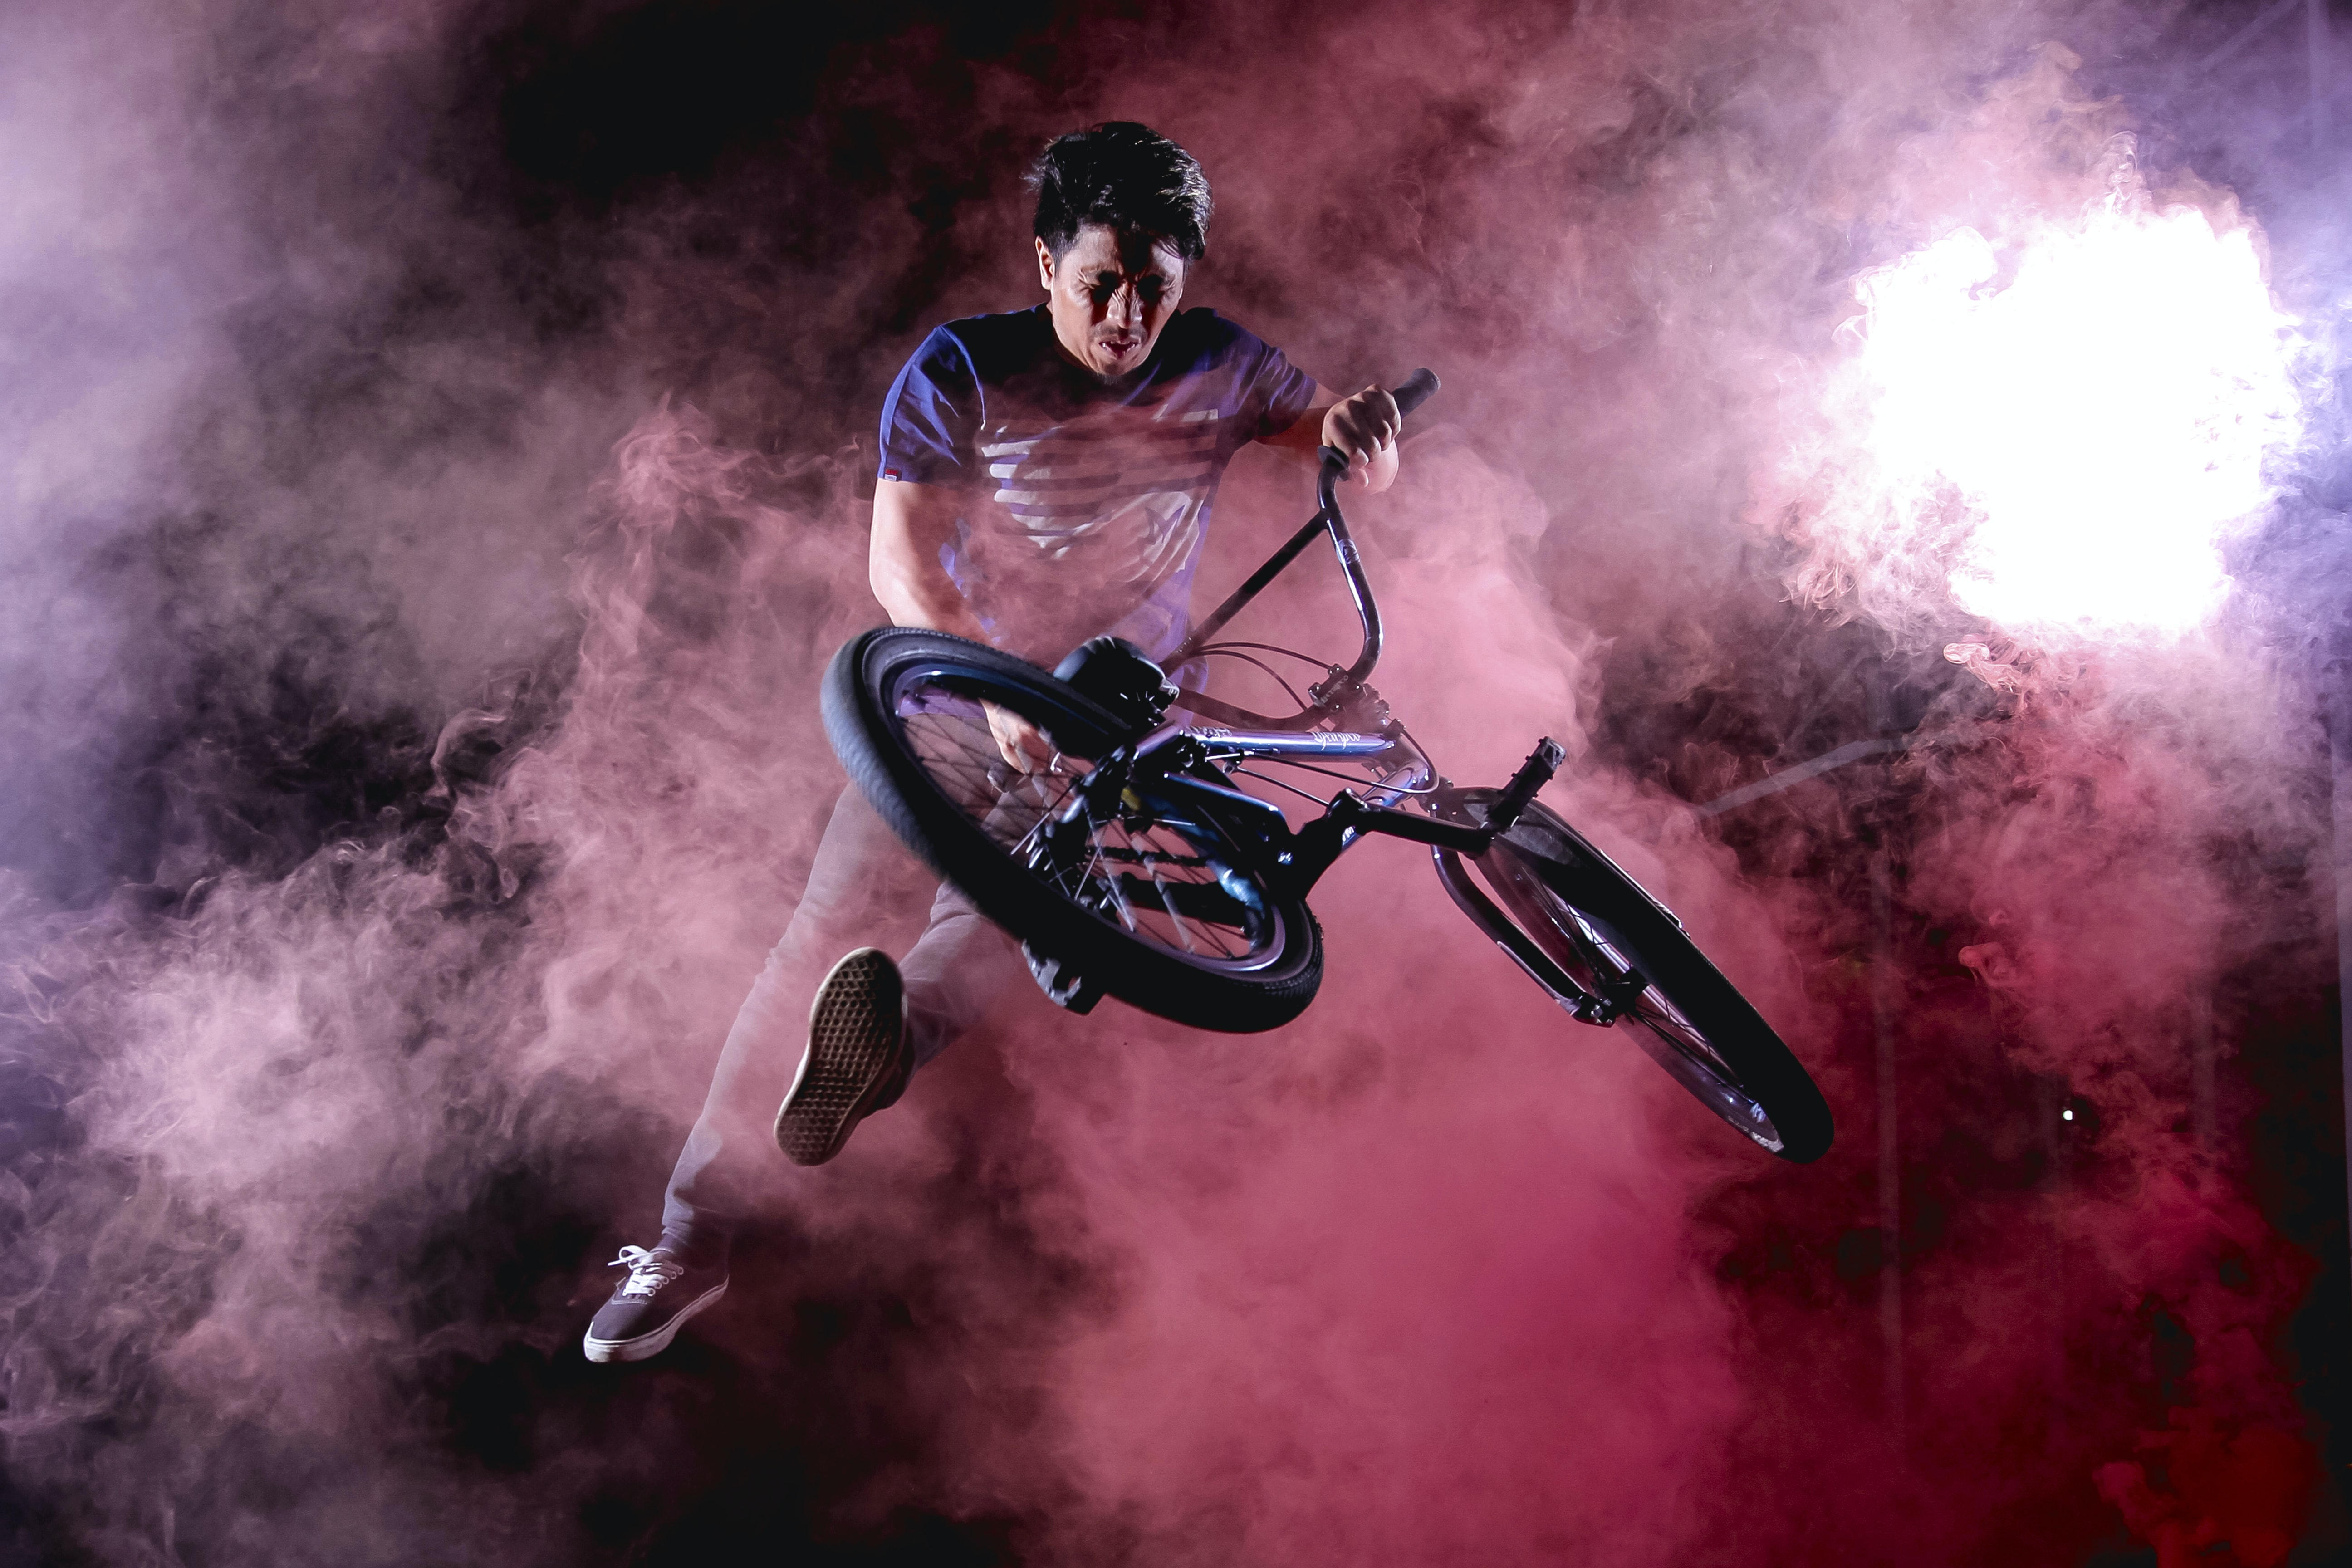 A man does a trick on a bike surrounded by purple and pink fog